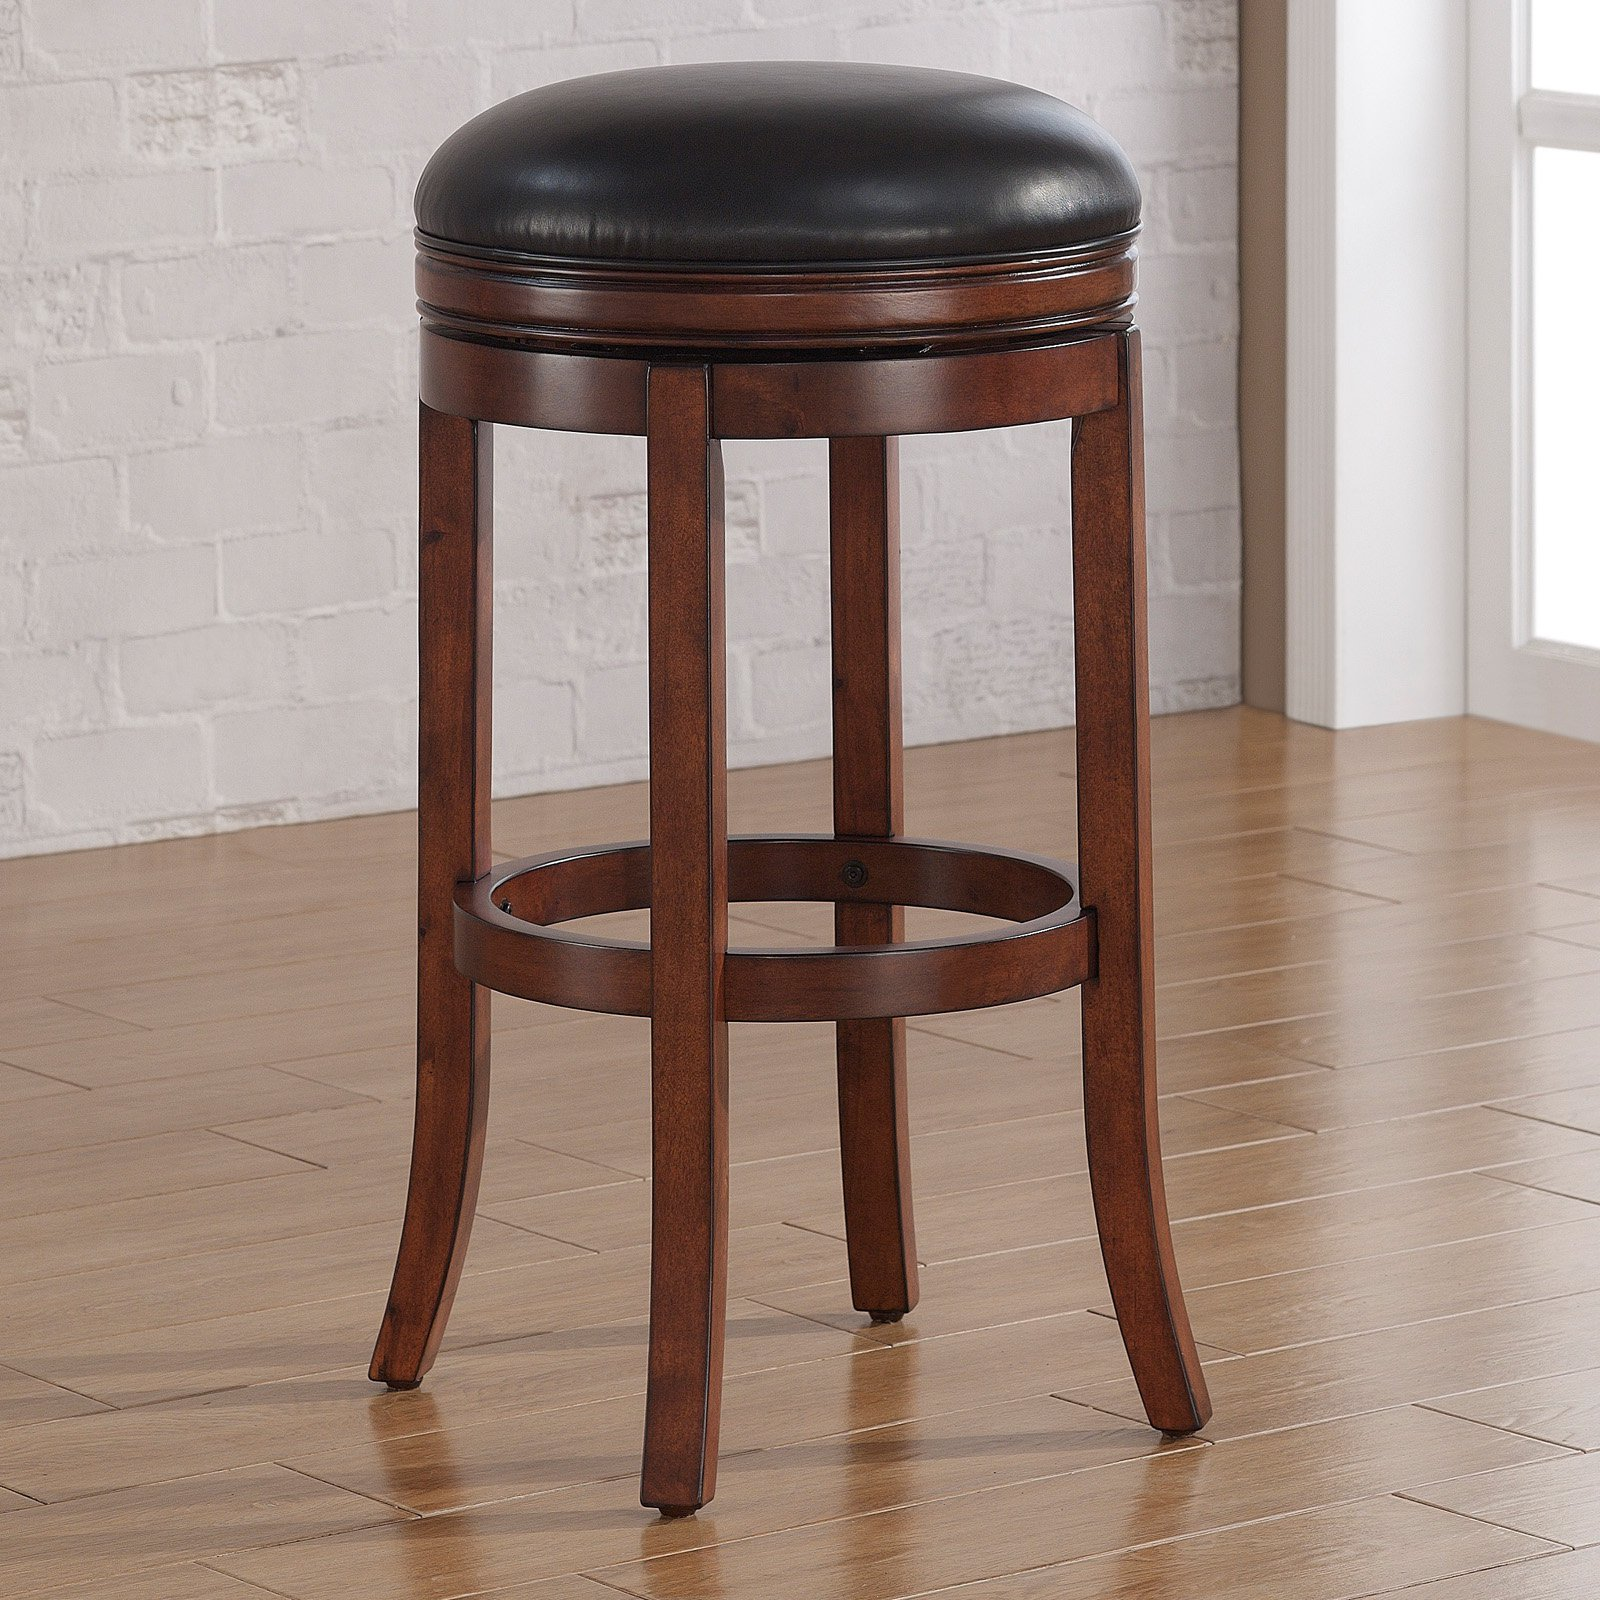 American Woodcrafters Stella Backless Counter Stool - Medium Walnut